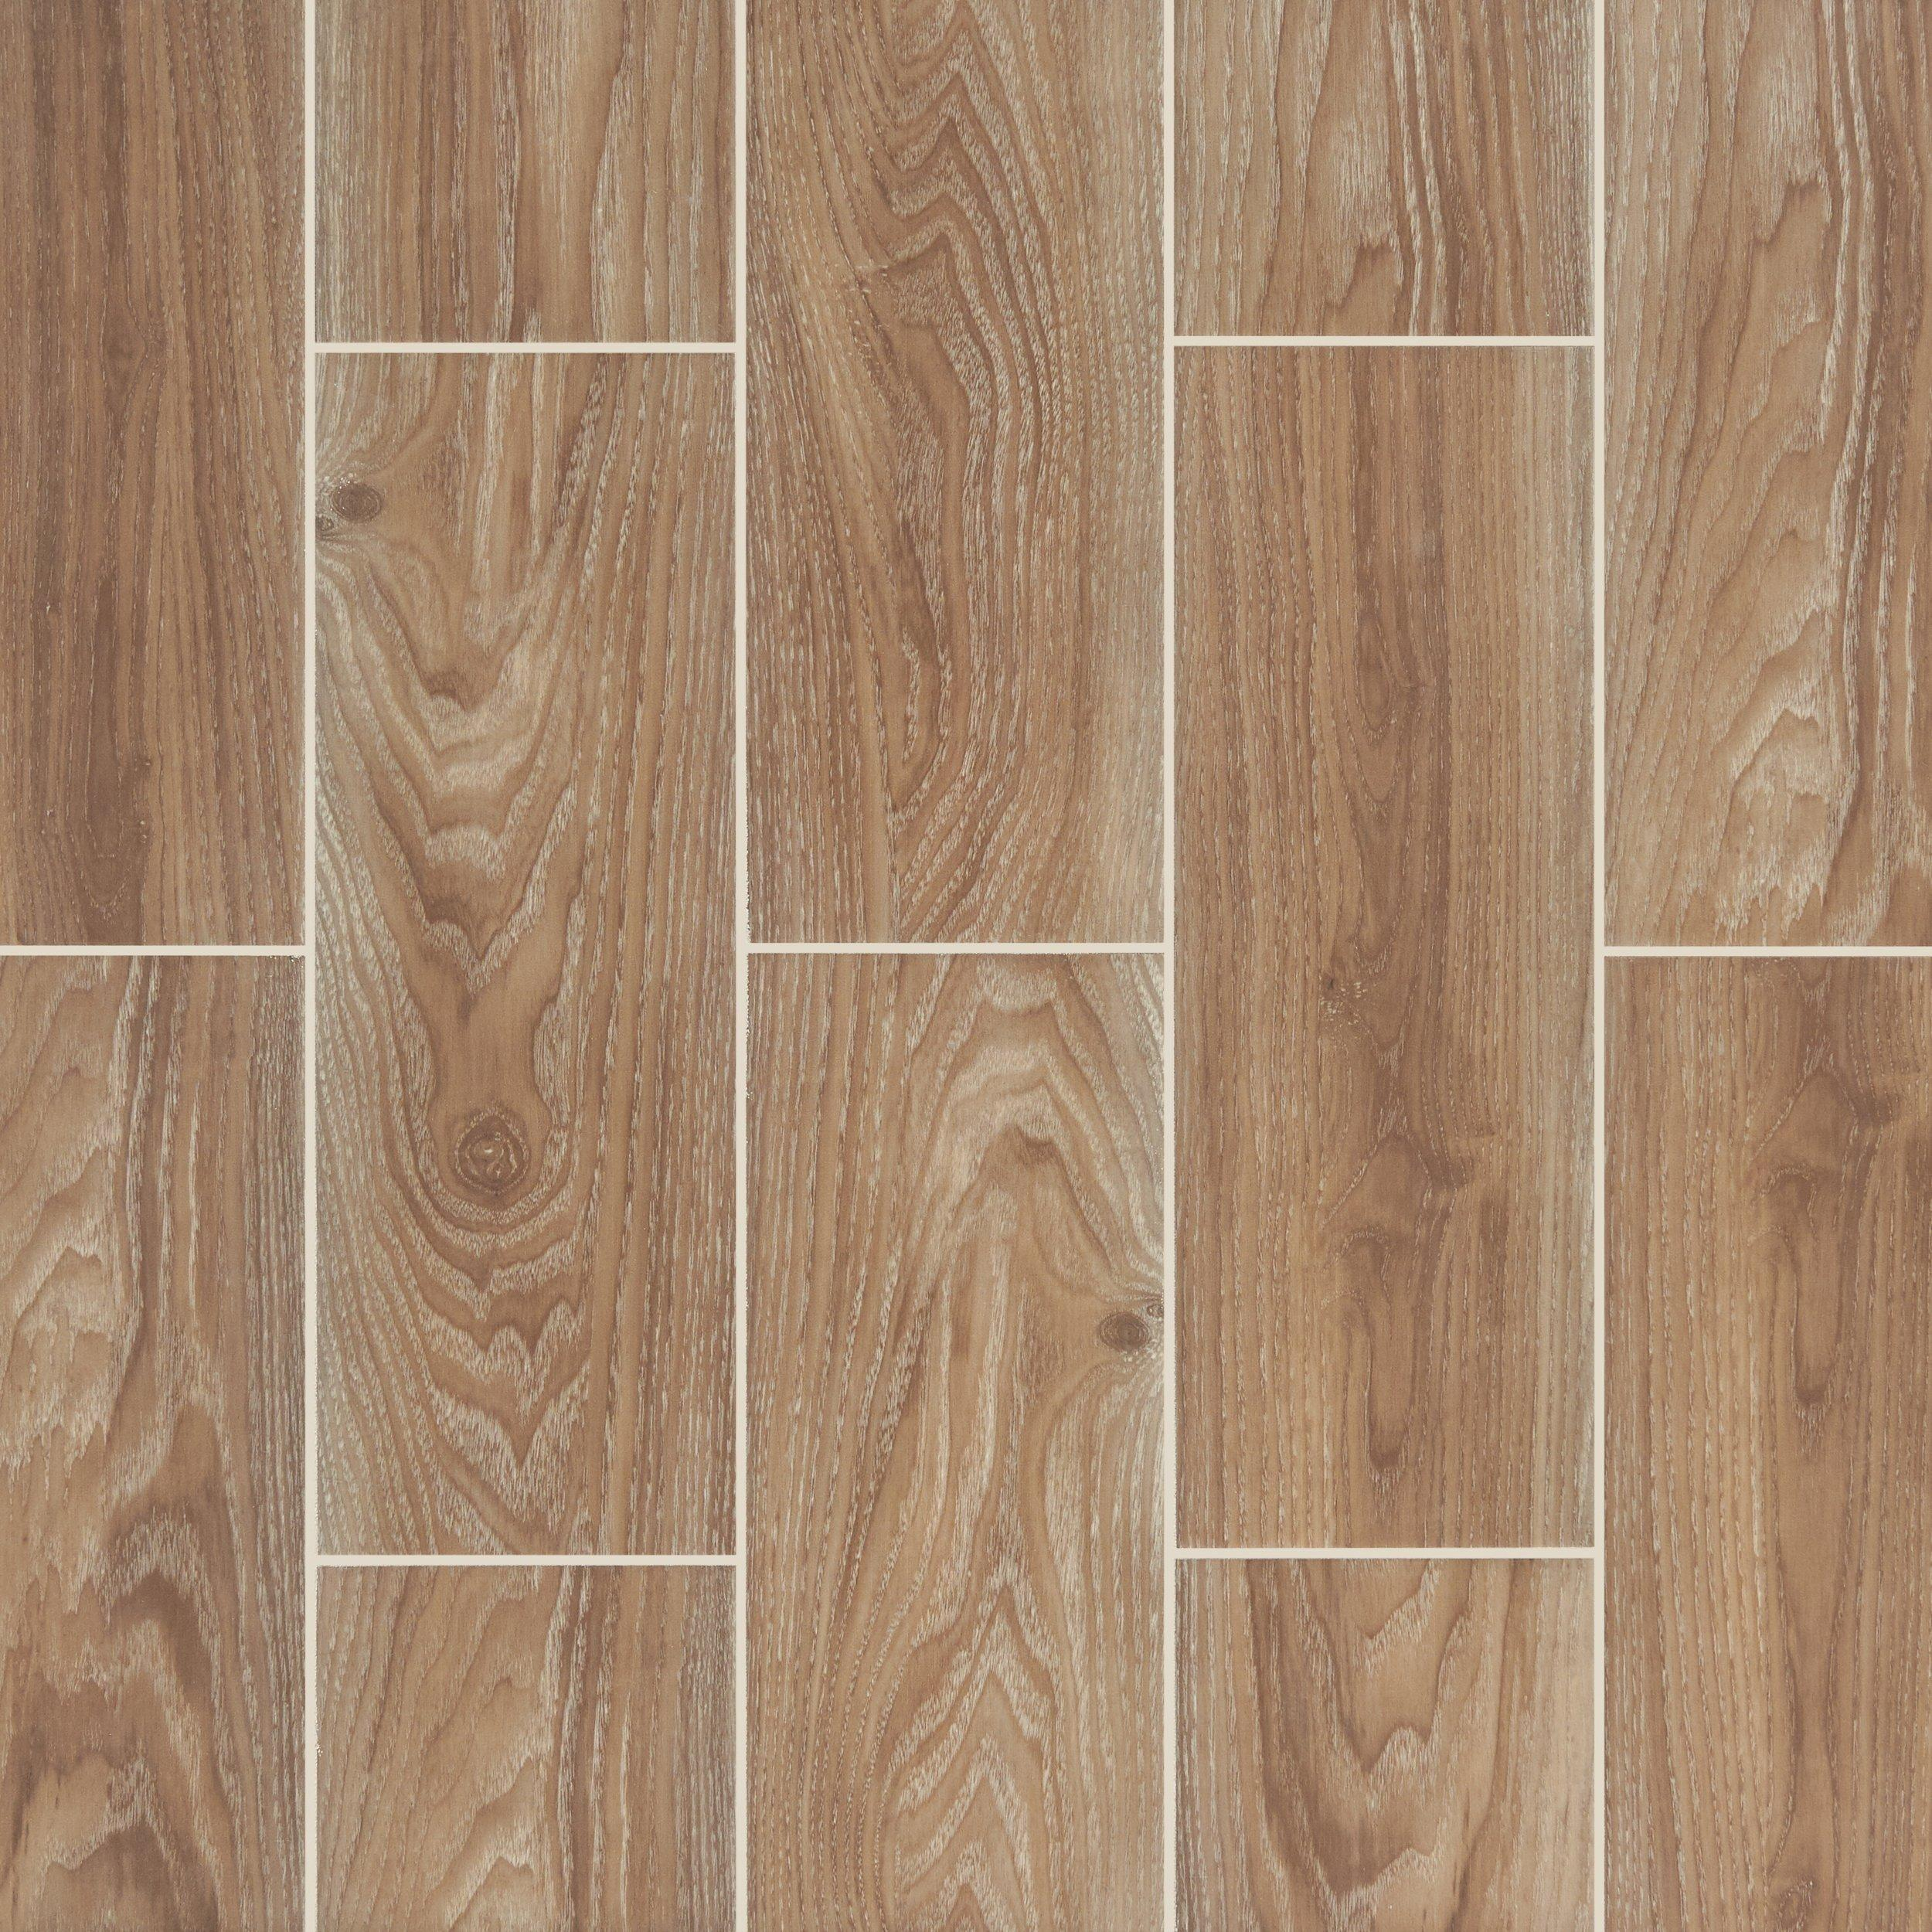 Tiles Inspiring Wood Plank Ceramic Tile